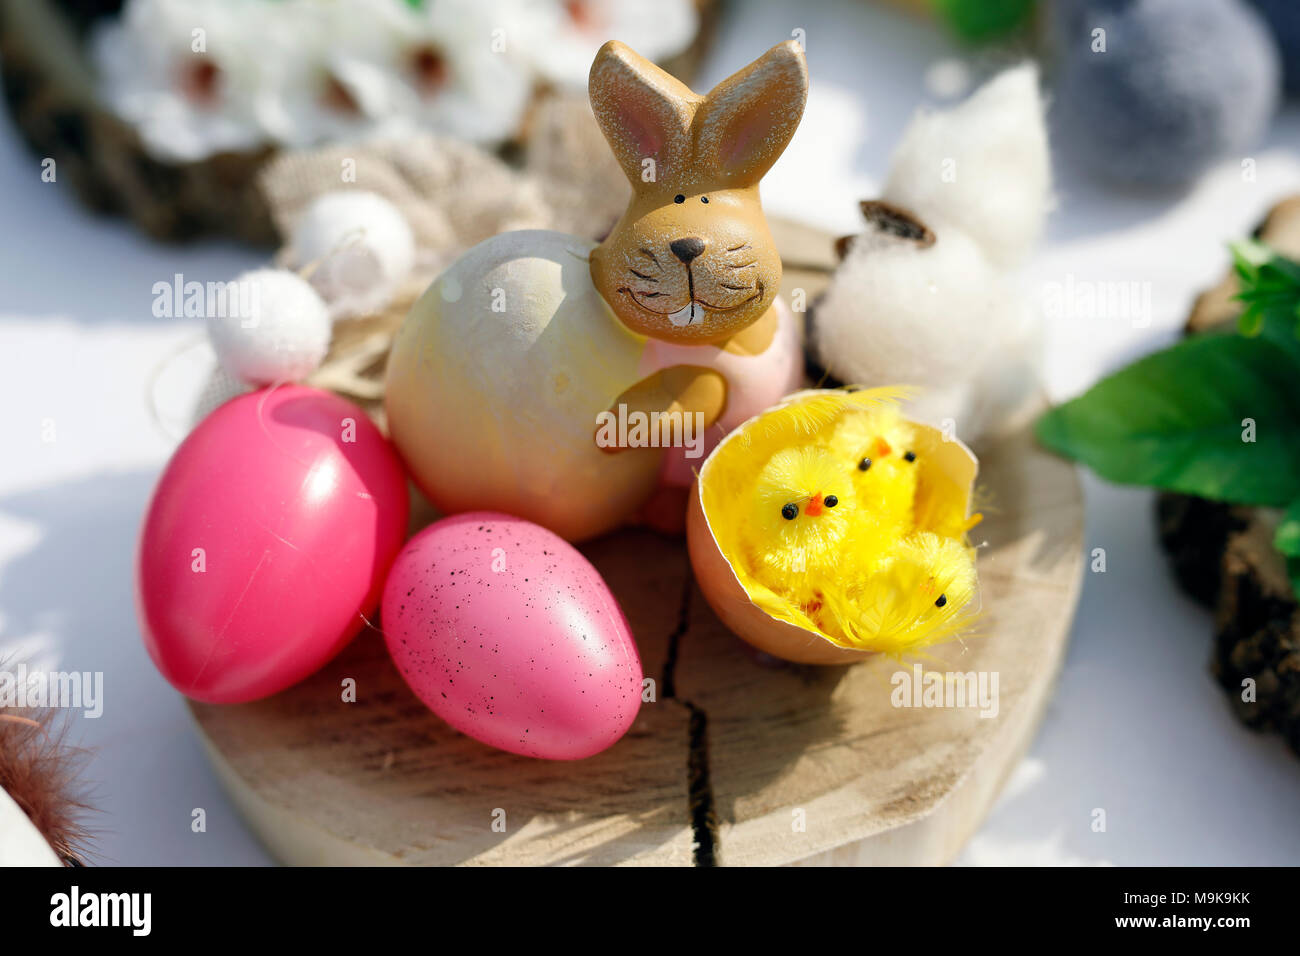 Easter decorations. Bunny, chickens and eggs. - Stock Image